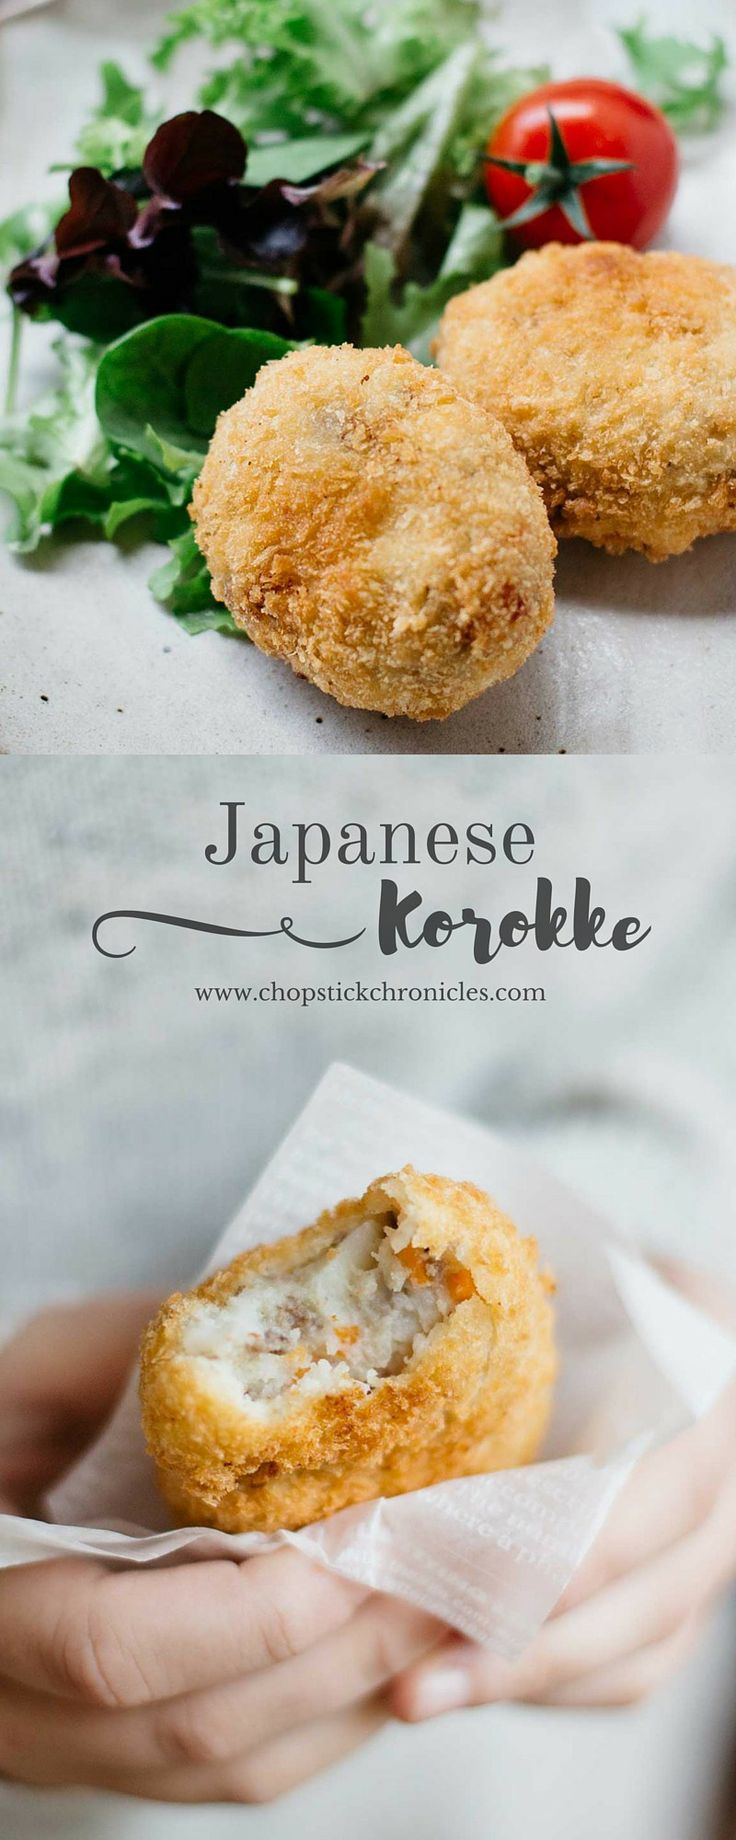 Japanese Korokke http://amzn.to/2tn28F4